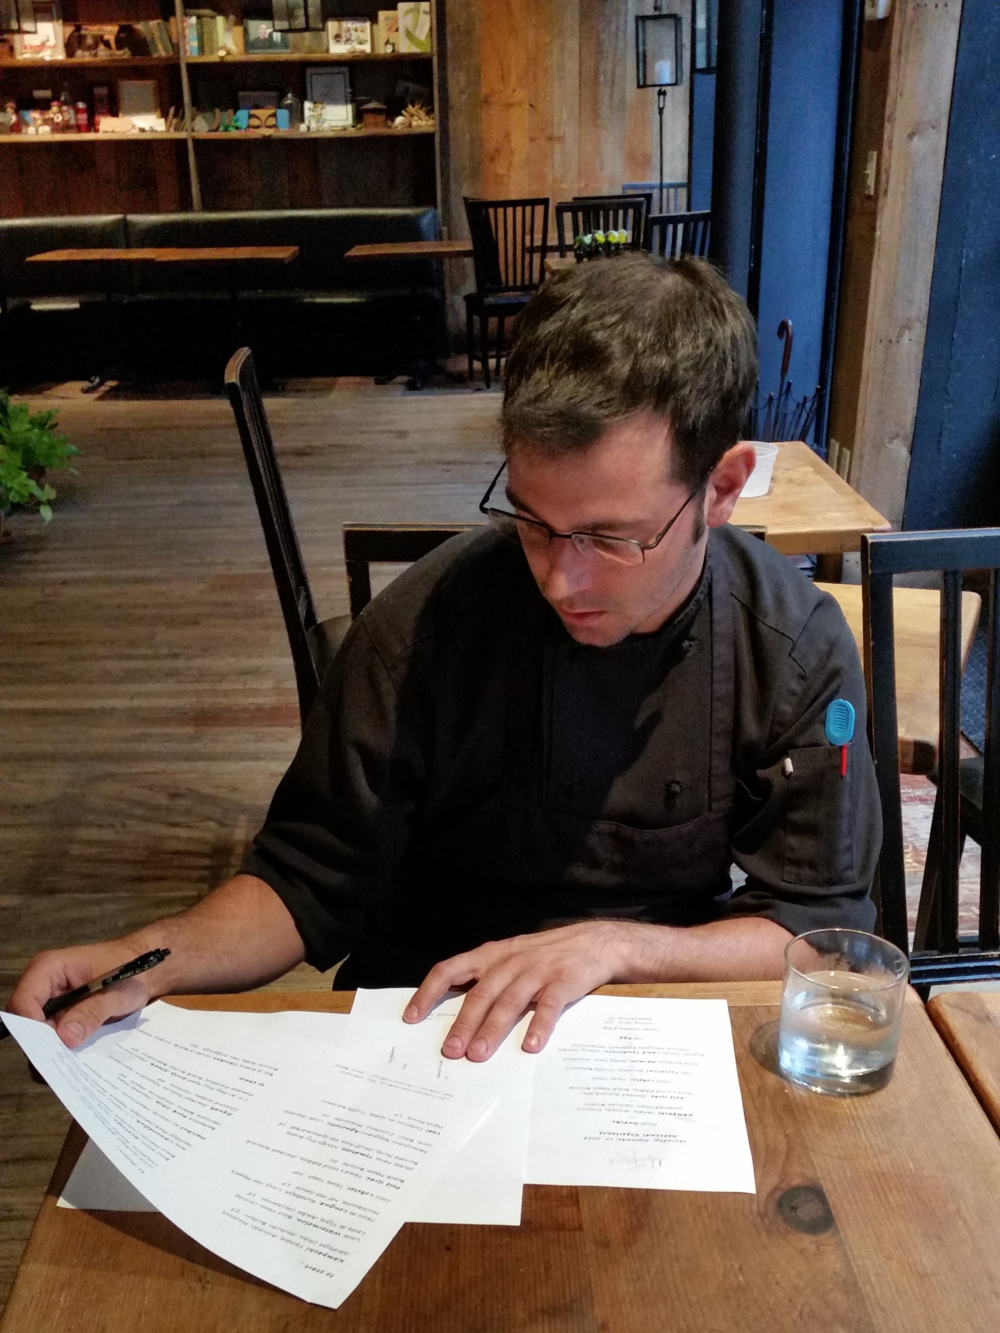 Chris looking over the night's menu | Erica Nonni for Foodable Network